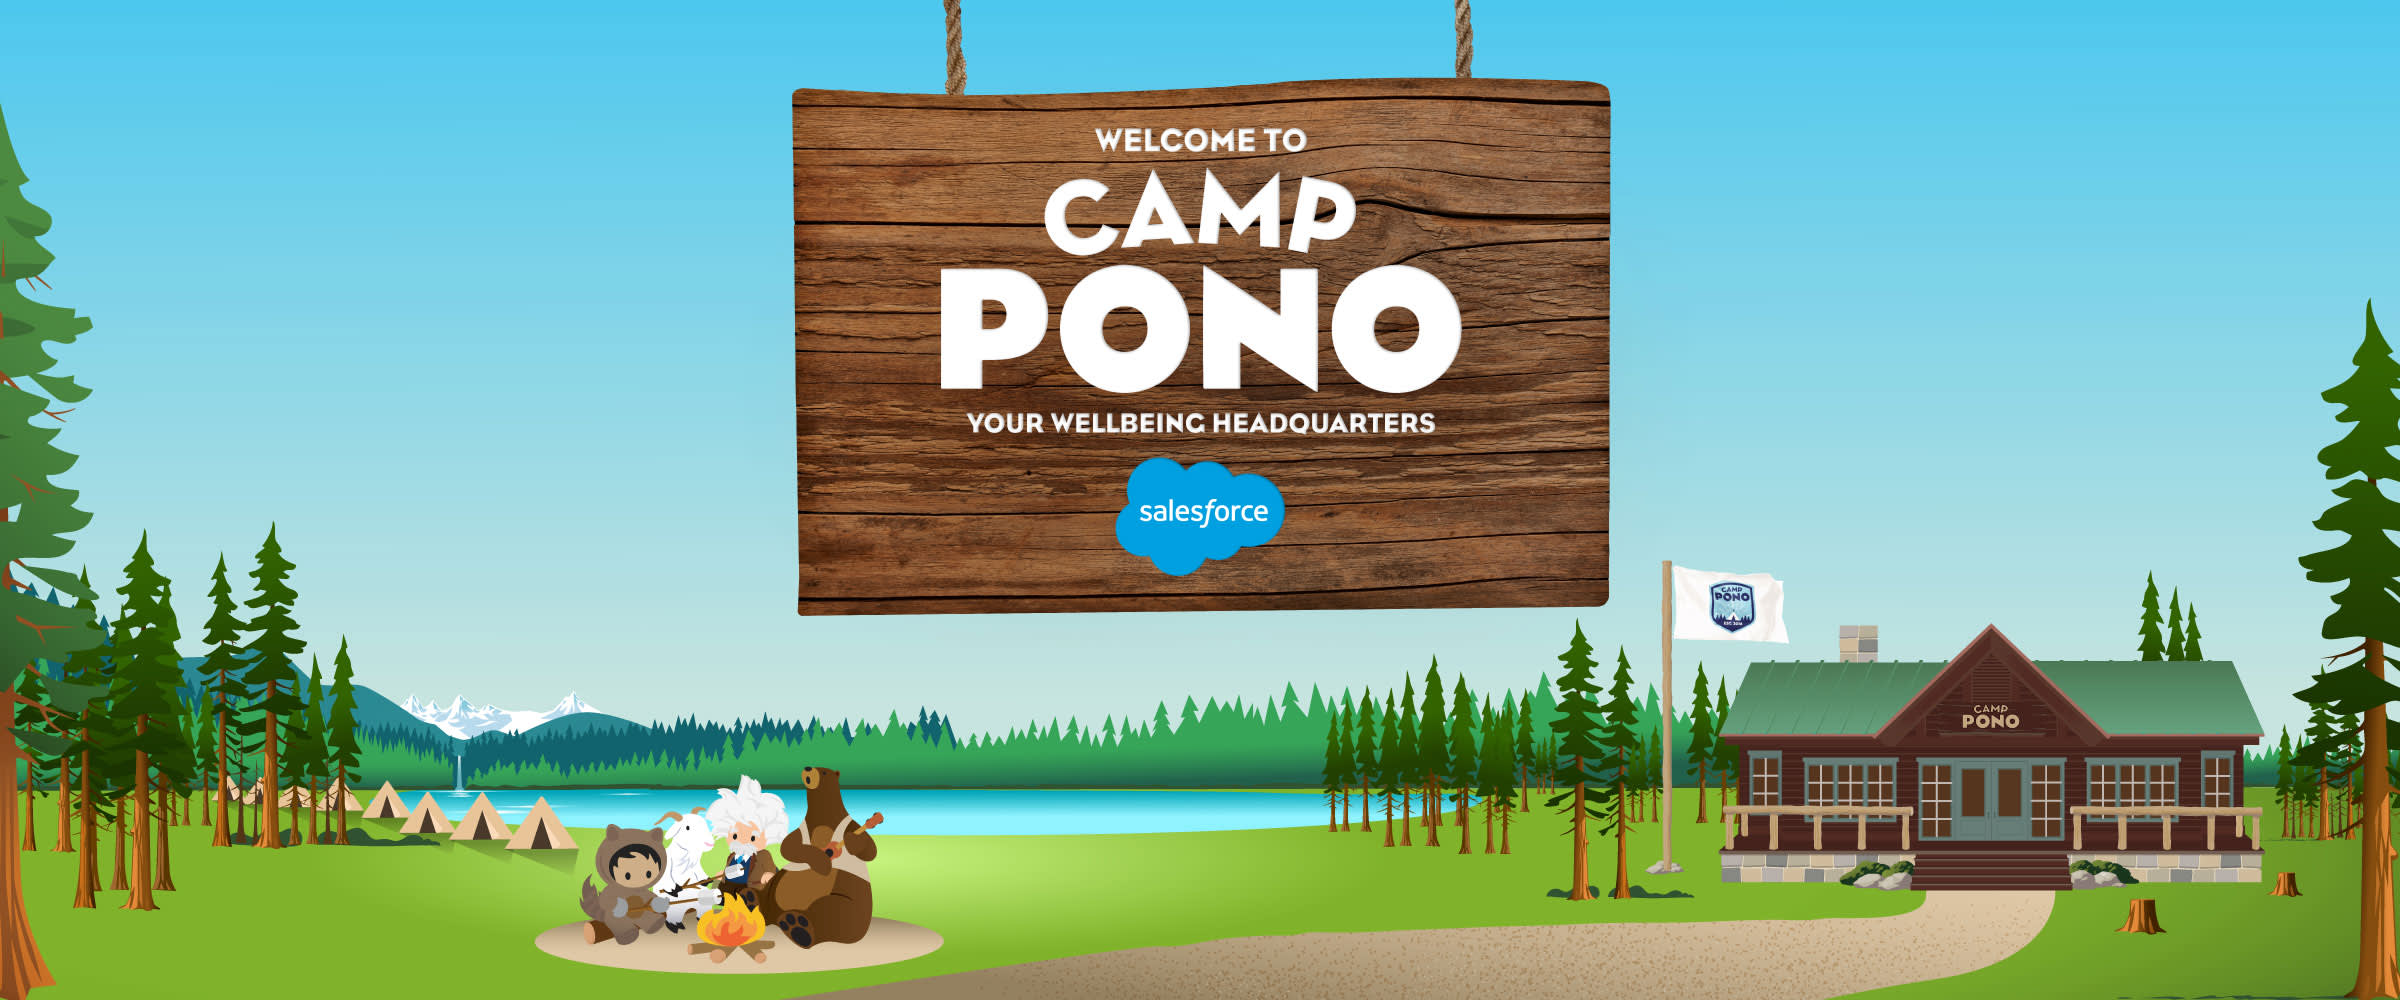 The Camp Pono website header featuring a campfire scene and camp headquarters.